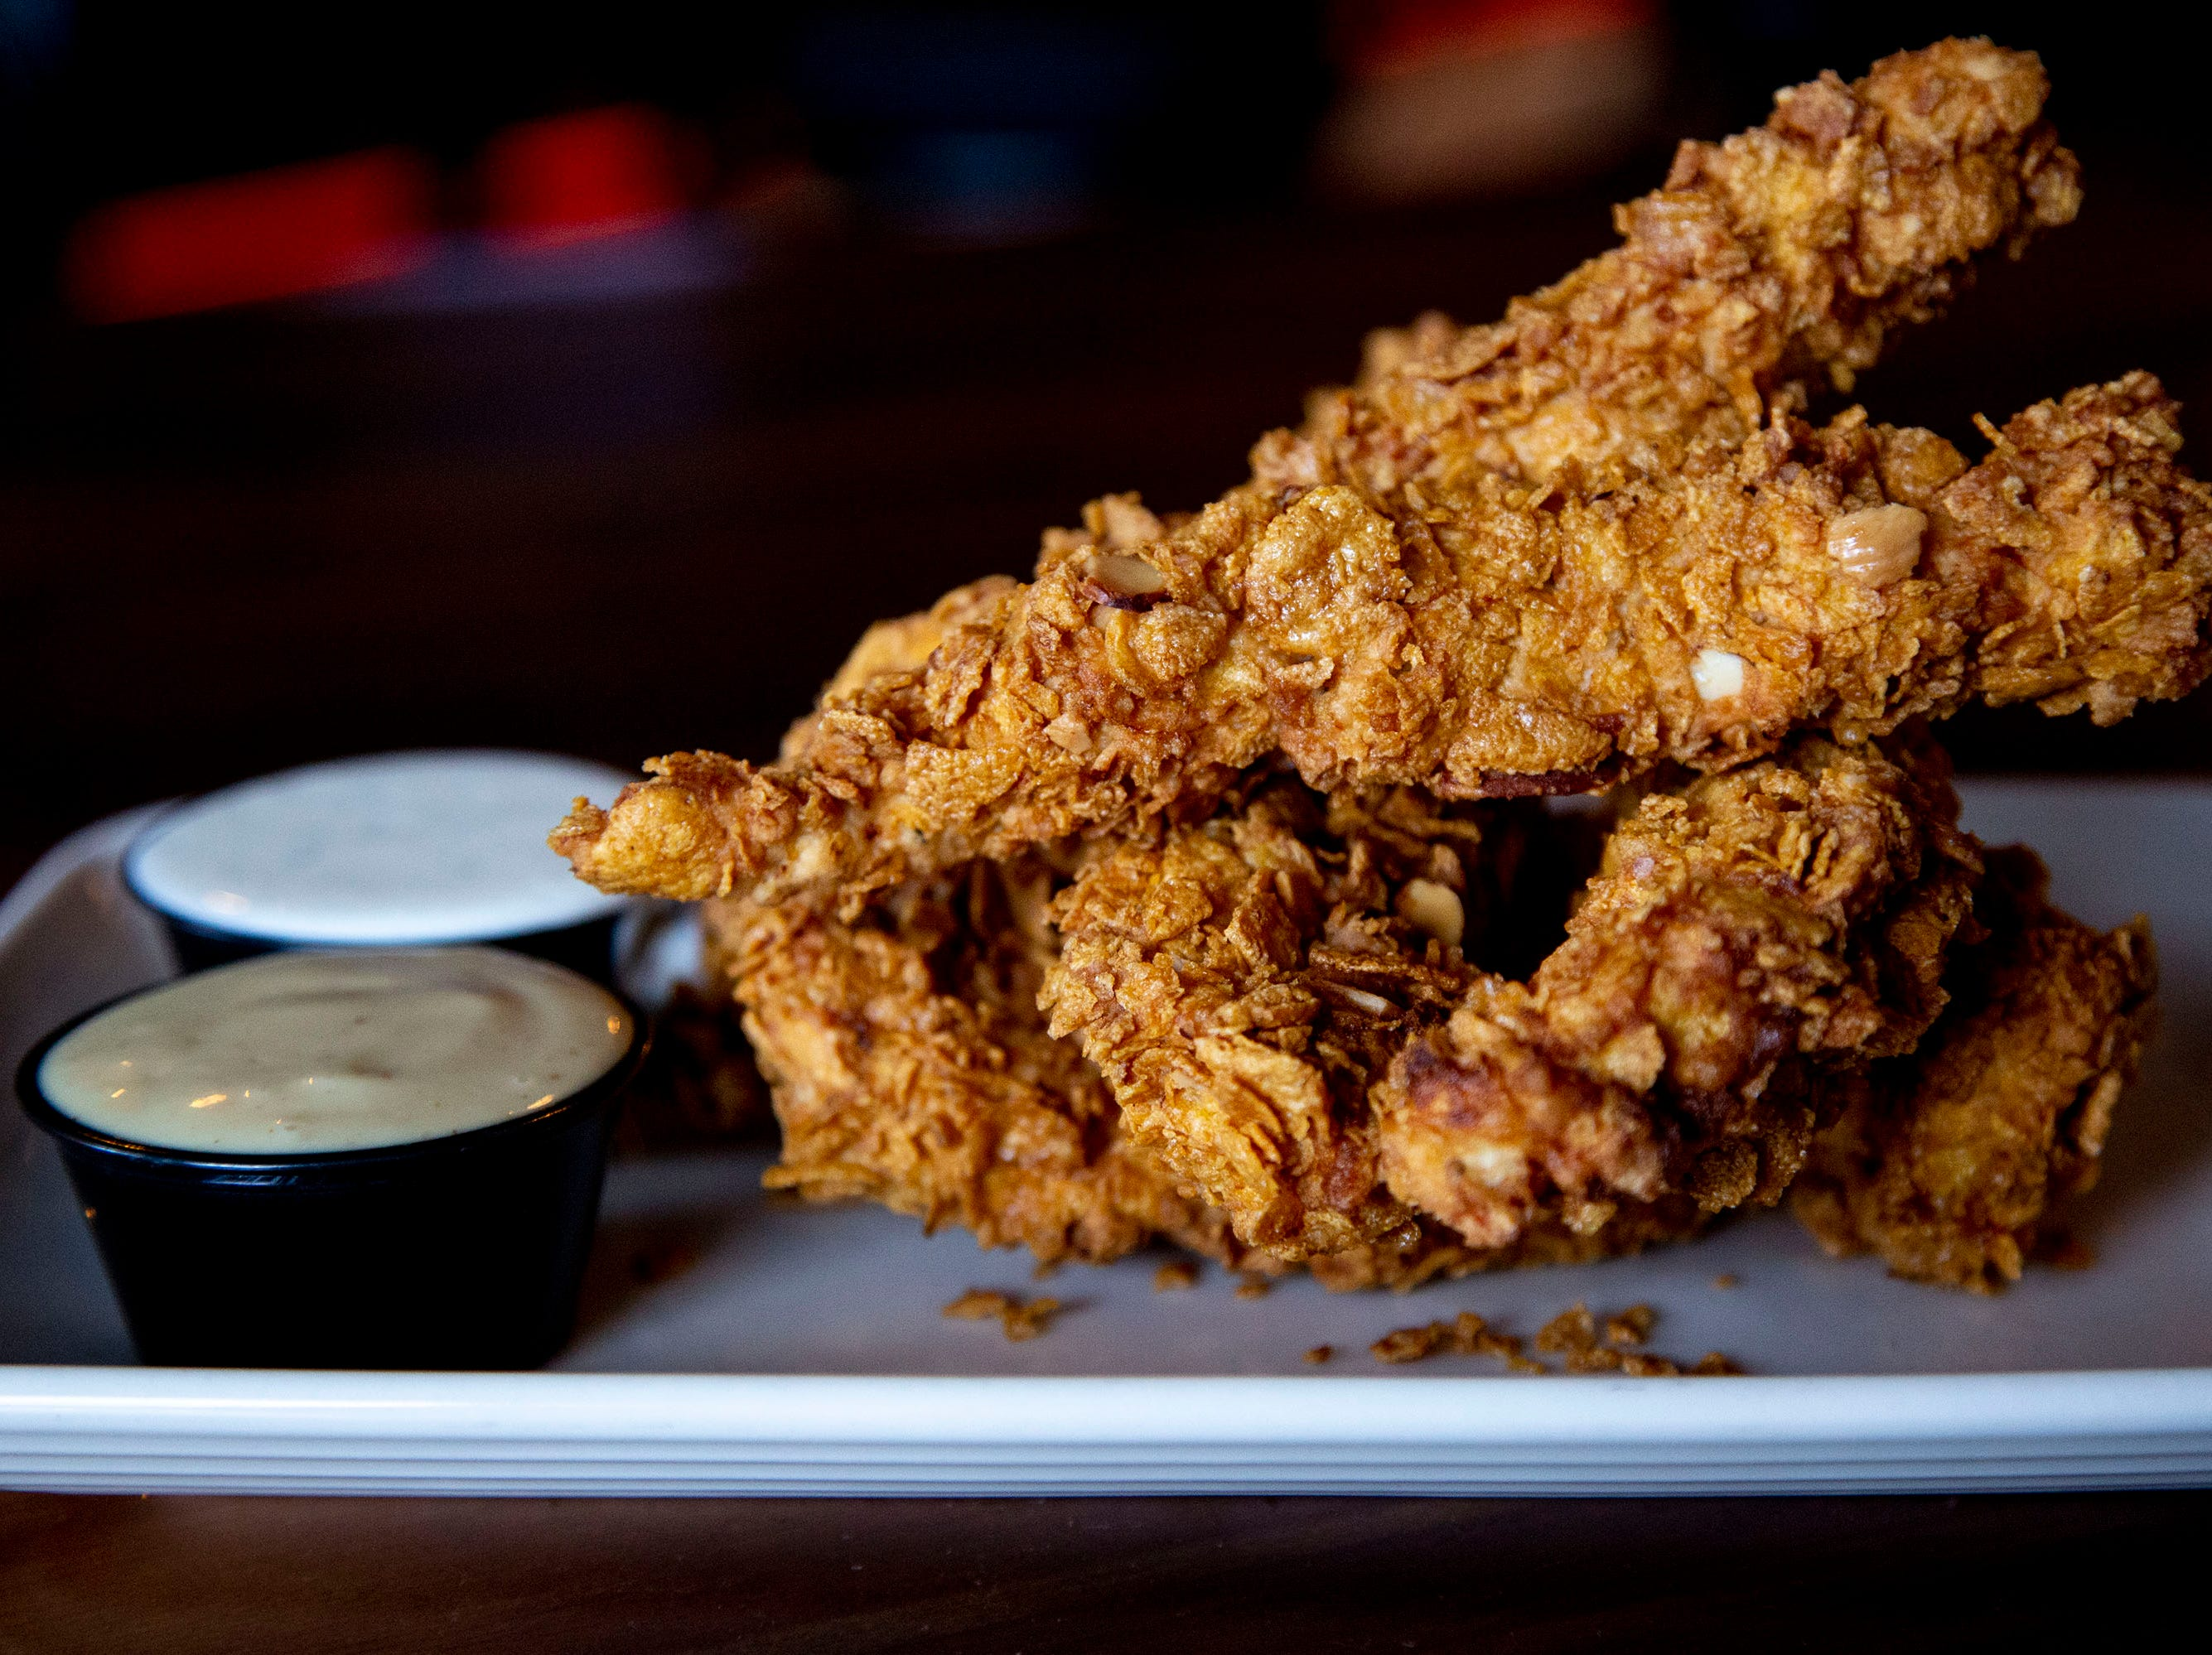 The almond encrusted chicken tenders at the Grumpy Goat Tavern on Wednesday, April 10, 2019, in West Des Moines.